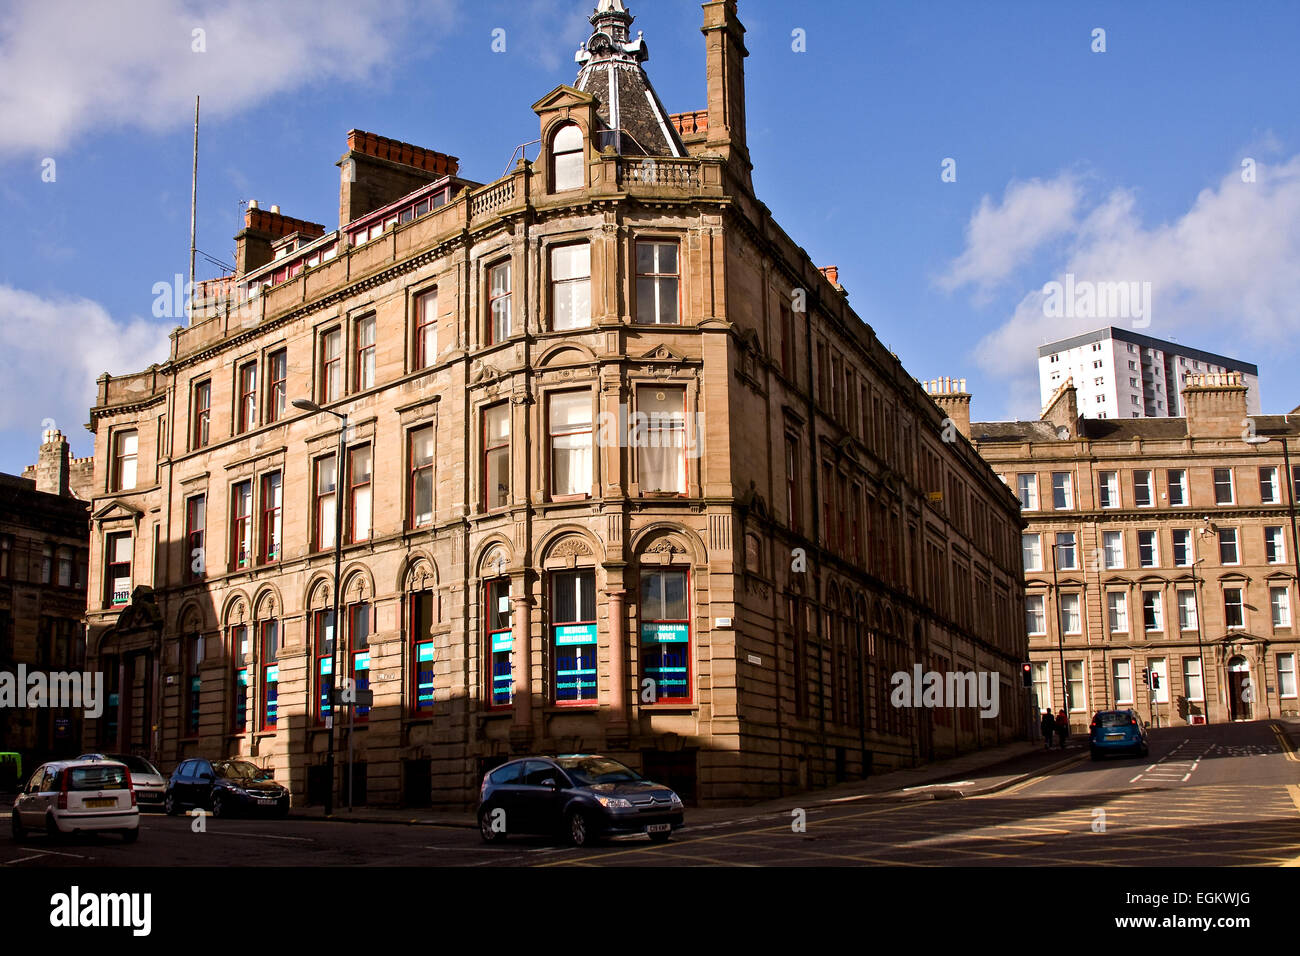 The 1884 Meadow Place Buildings: A Category Type B Listed Building situated at 46 Meadowside, Dundee, UK - Stock Image